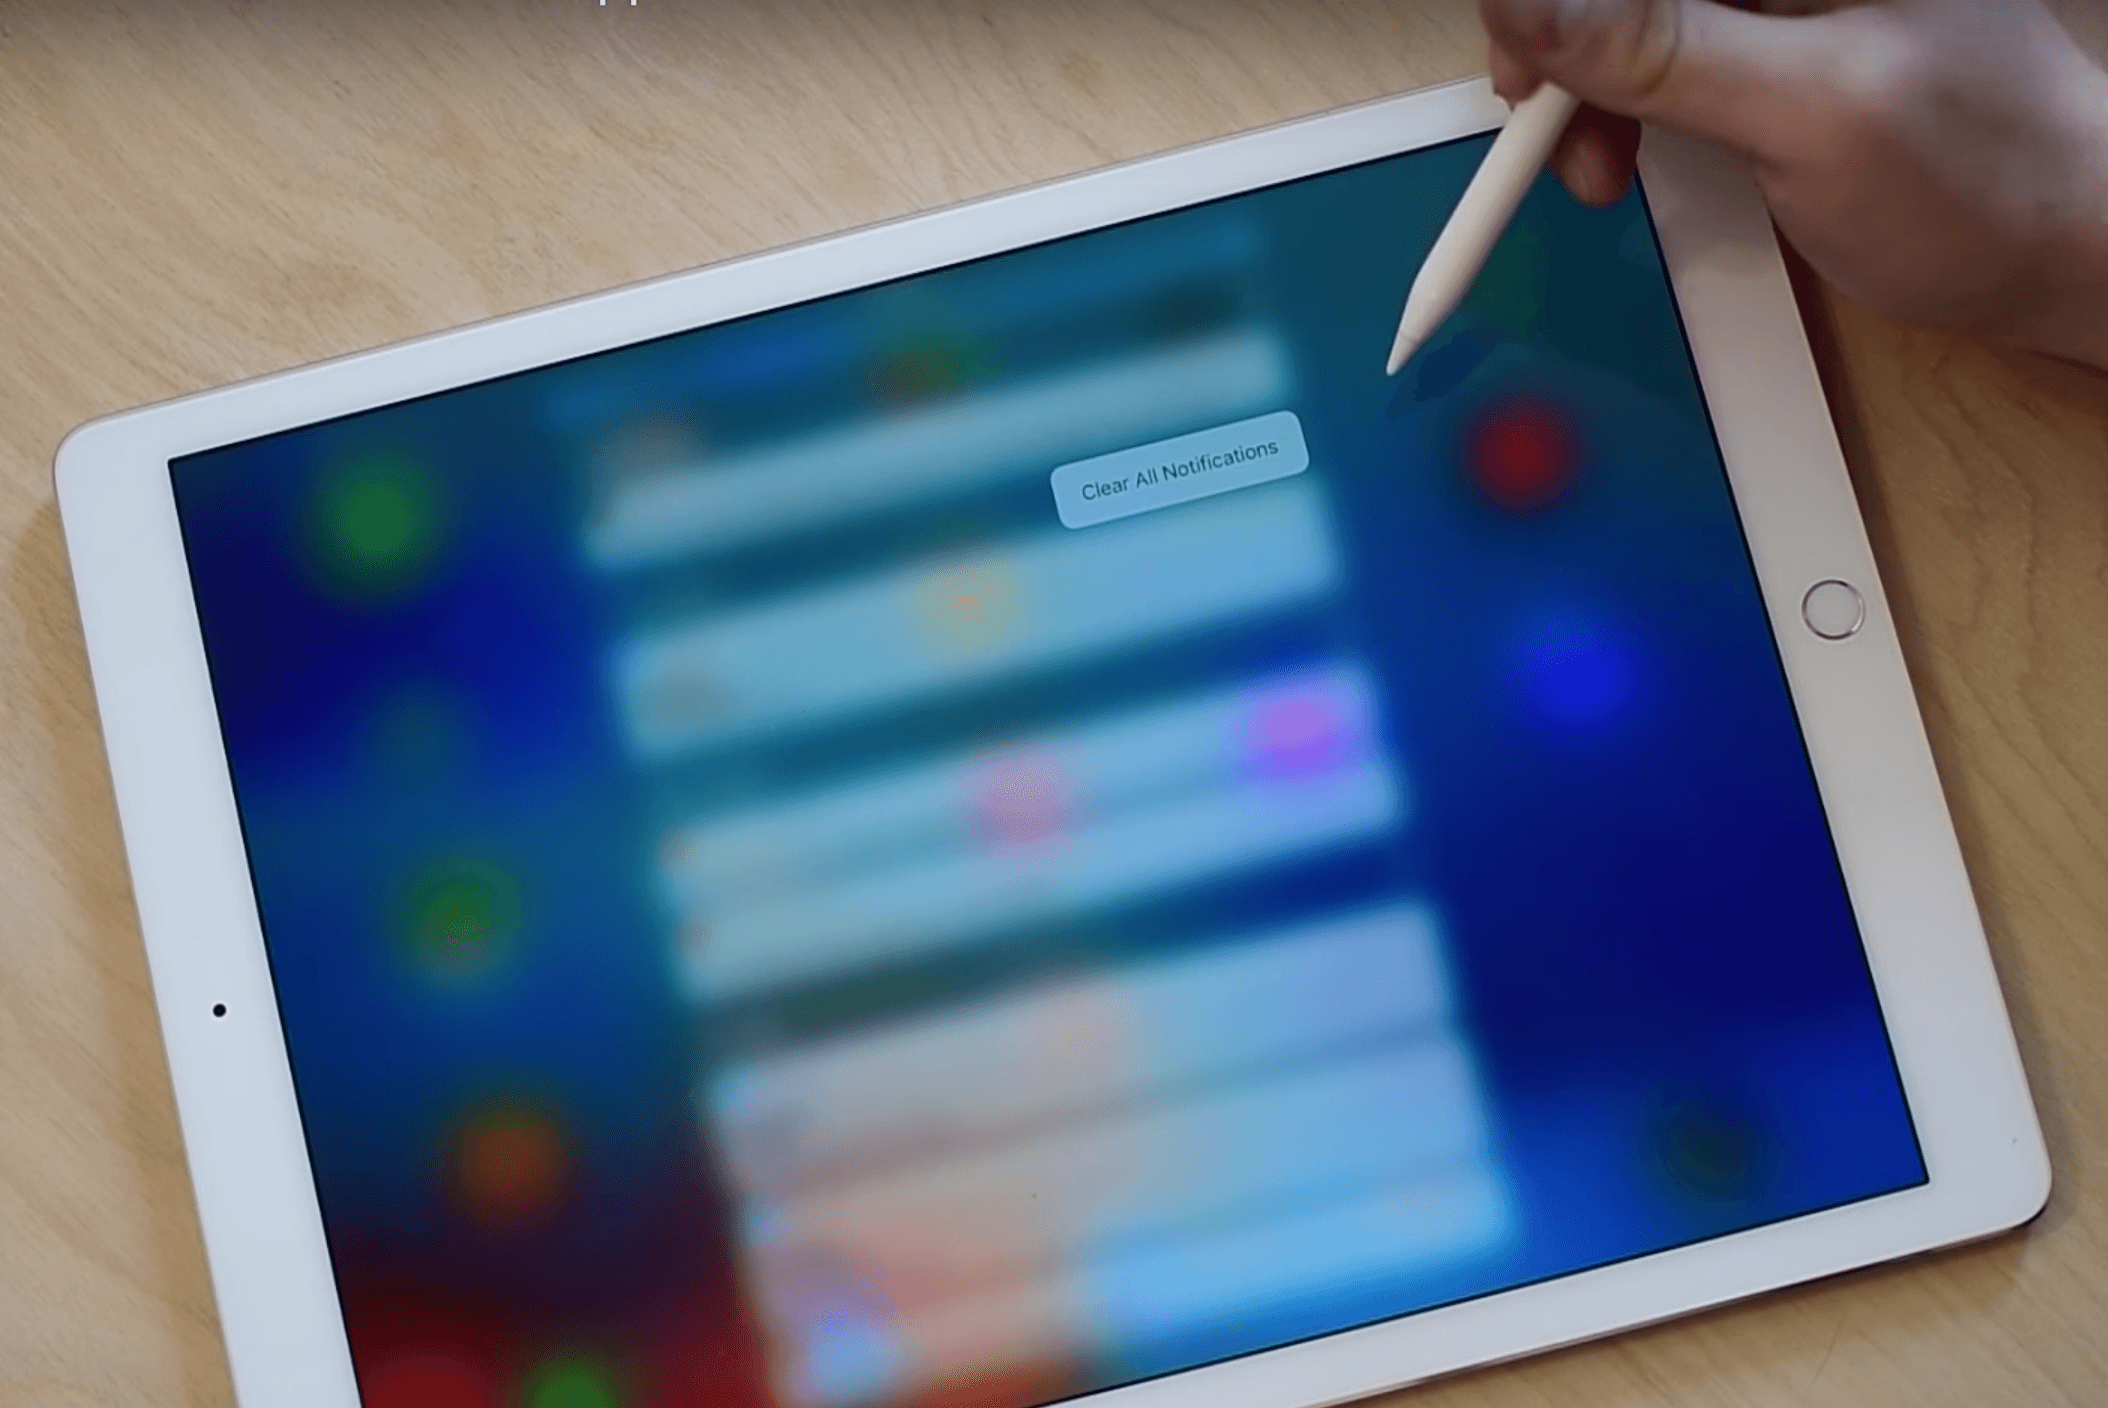 IOS 10 Brings 3D Touch Gestures To IPad Pro